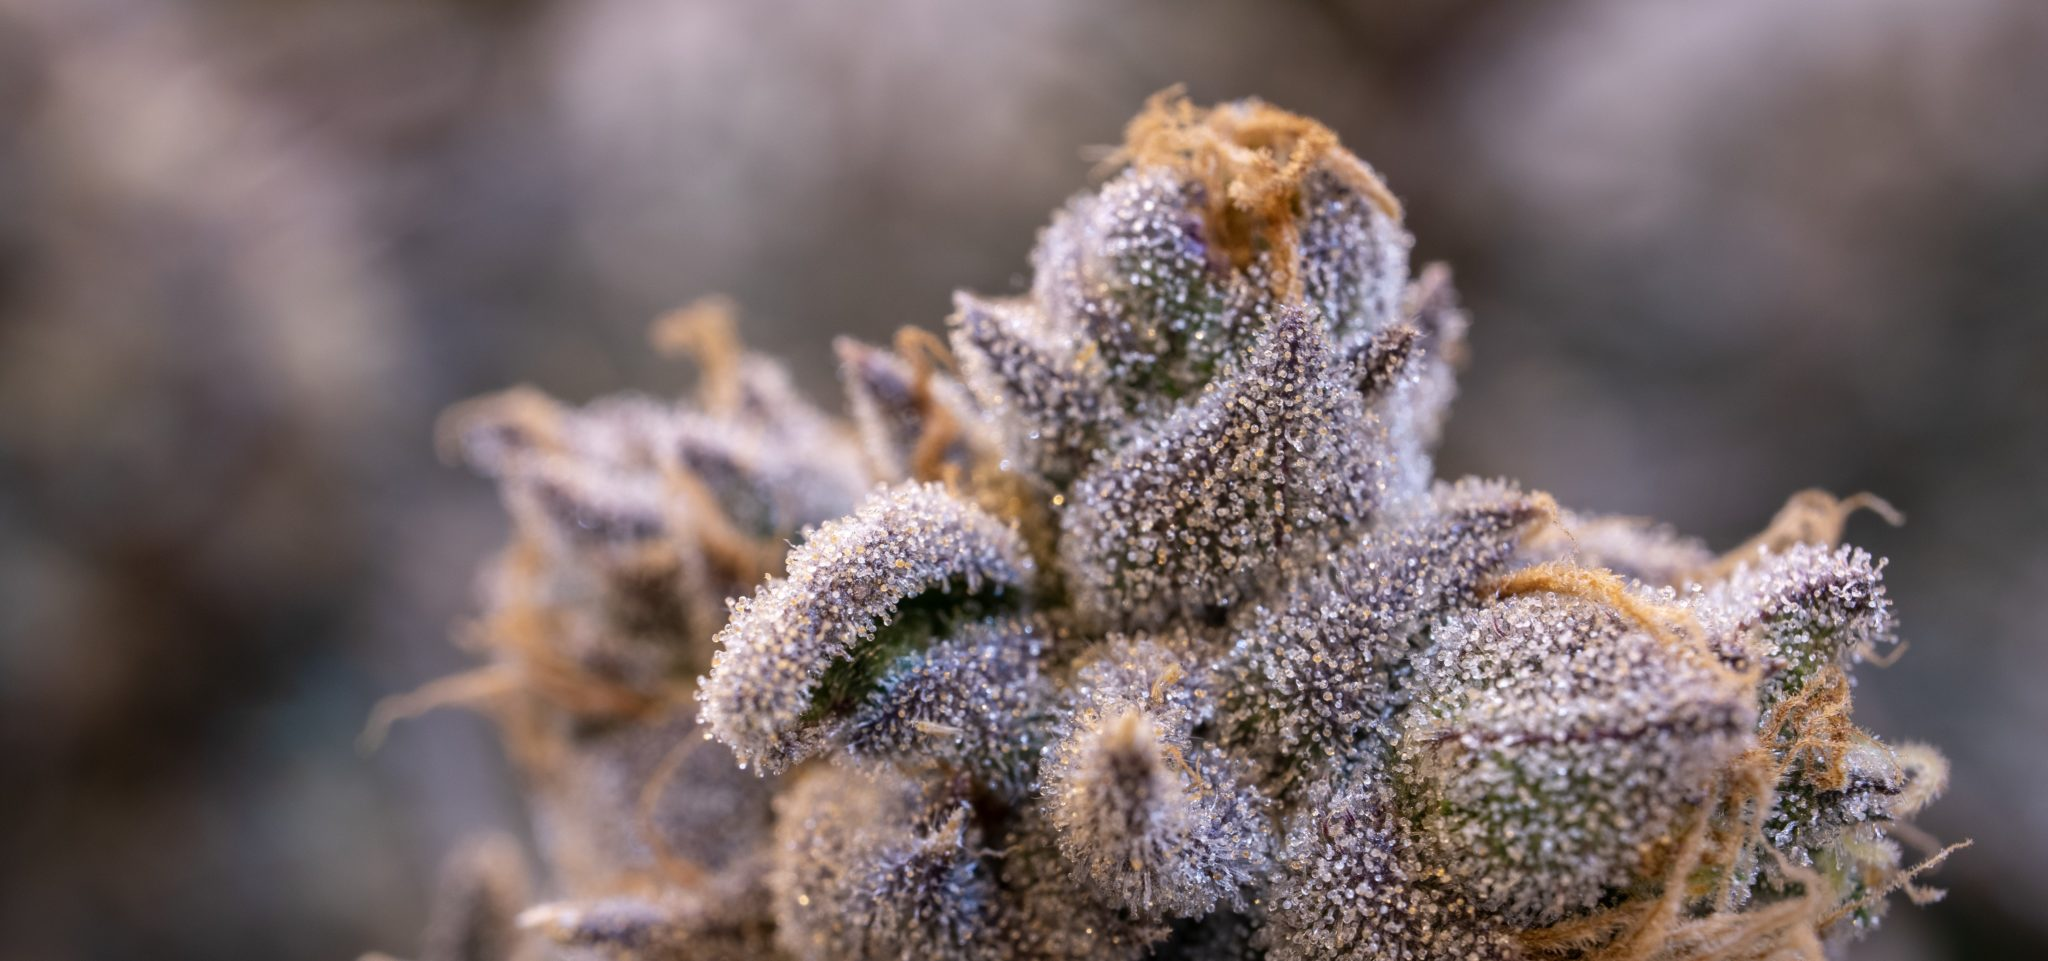 Visible crystals of trichomes - cannabis